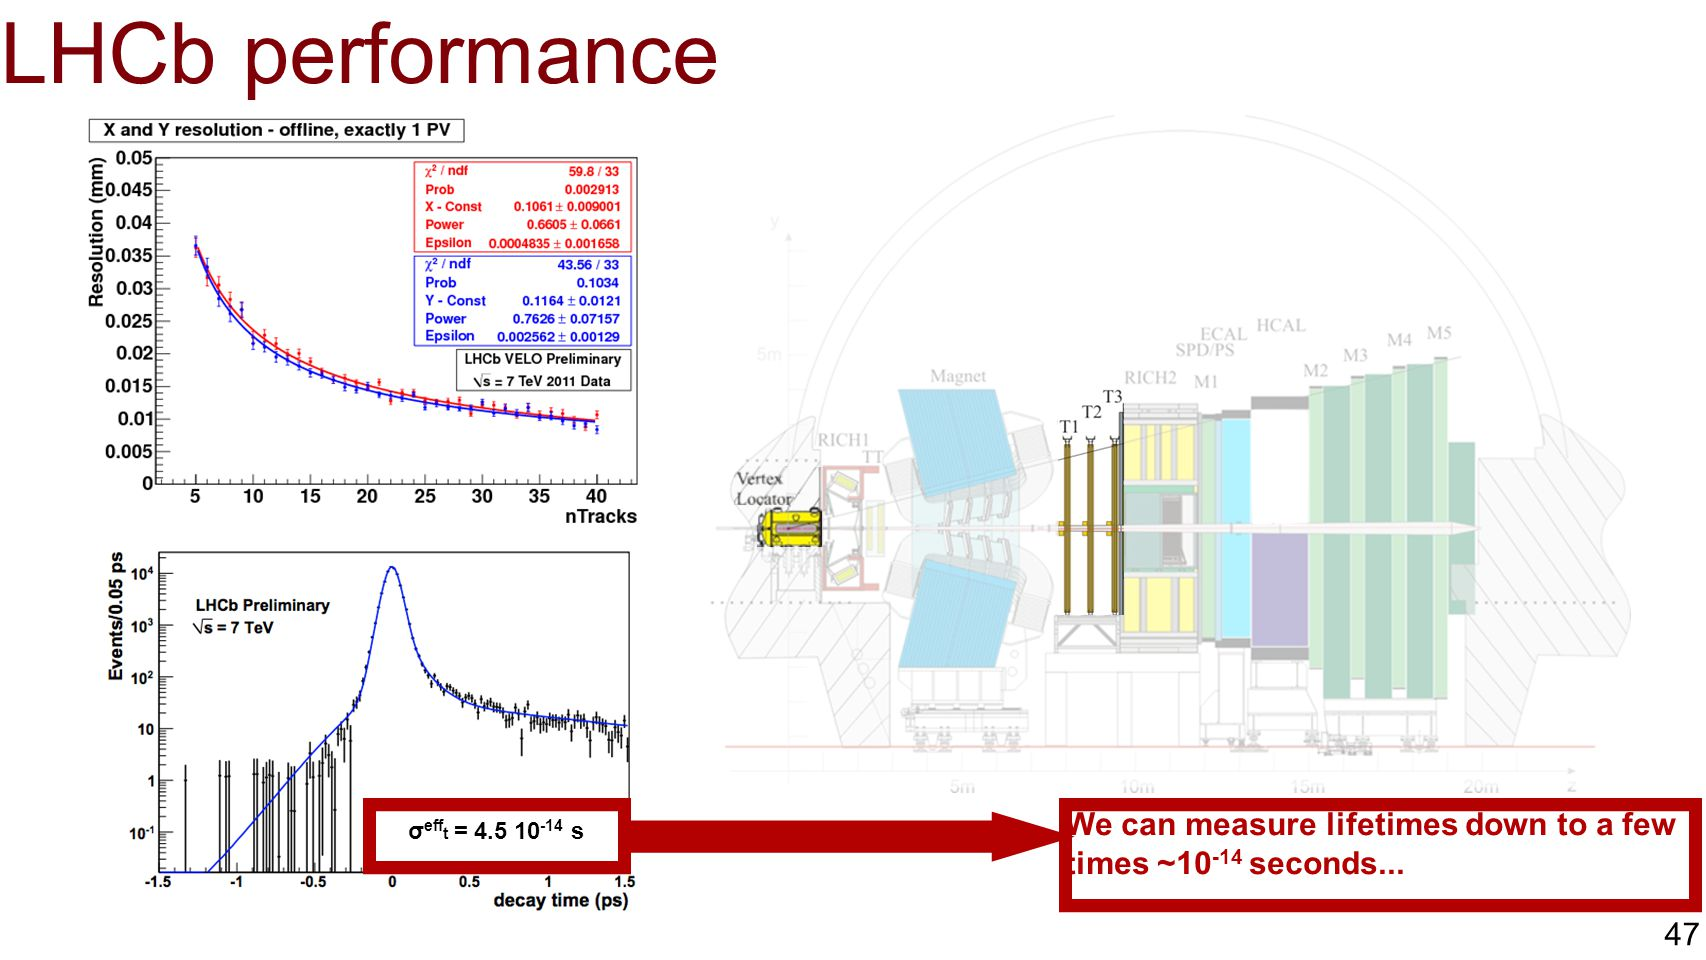 LHCb performance We can measure lifetimes down to a few times ~10-14 seconds... σefft = 4.5 10-14 s